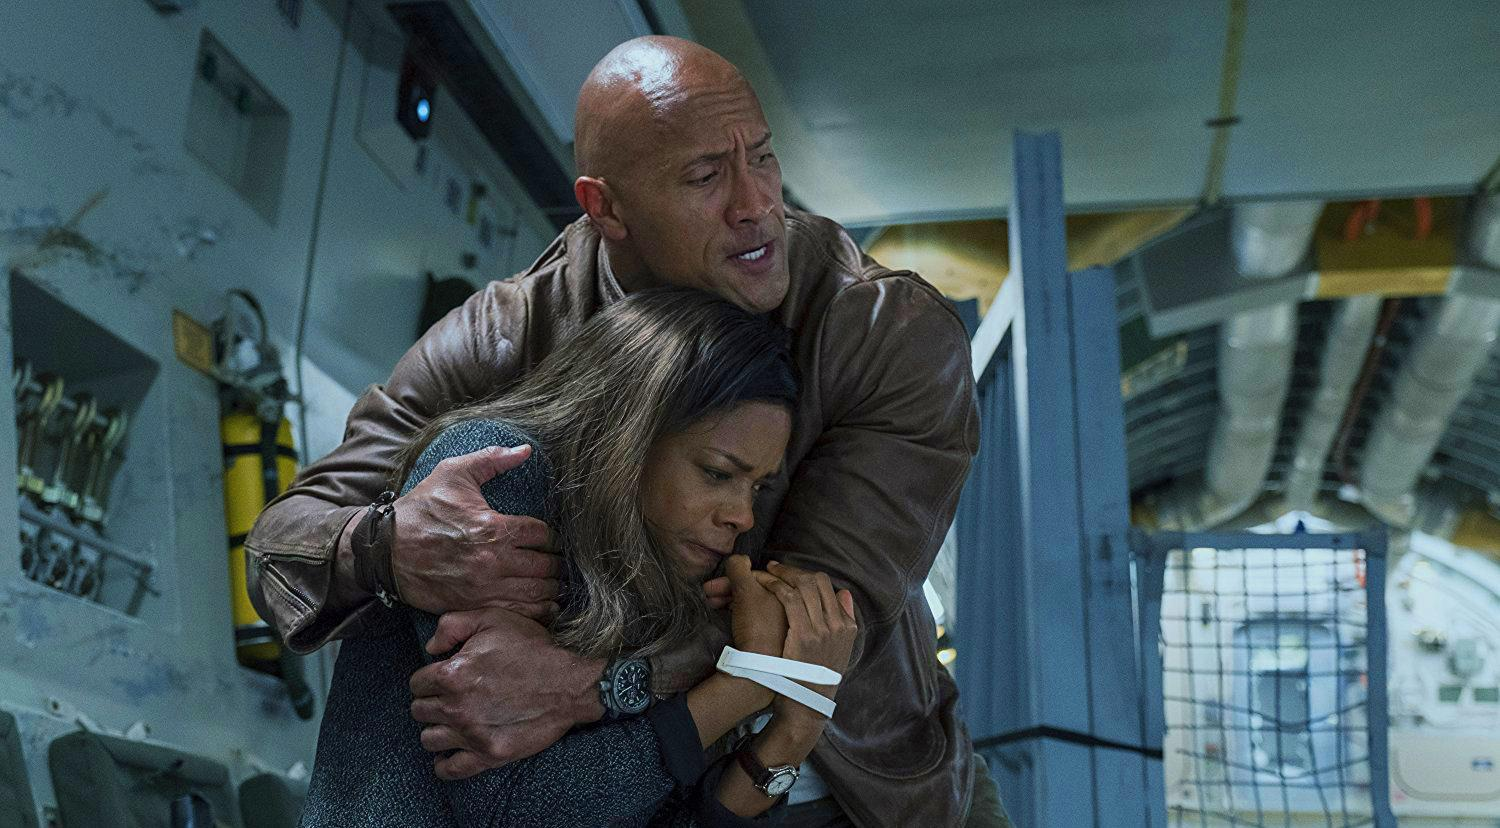 """WARNER BROS. PICTURES Dwayne """"The Rock"""" Johnson stars as a primatologist with an agenda in """"Rampage."""" The movie smashed through competition to take the number one spot for the weekend box office, outpacing fan favrite """"A Quiet Place"""" with $35.9 million."""